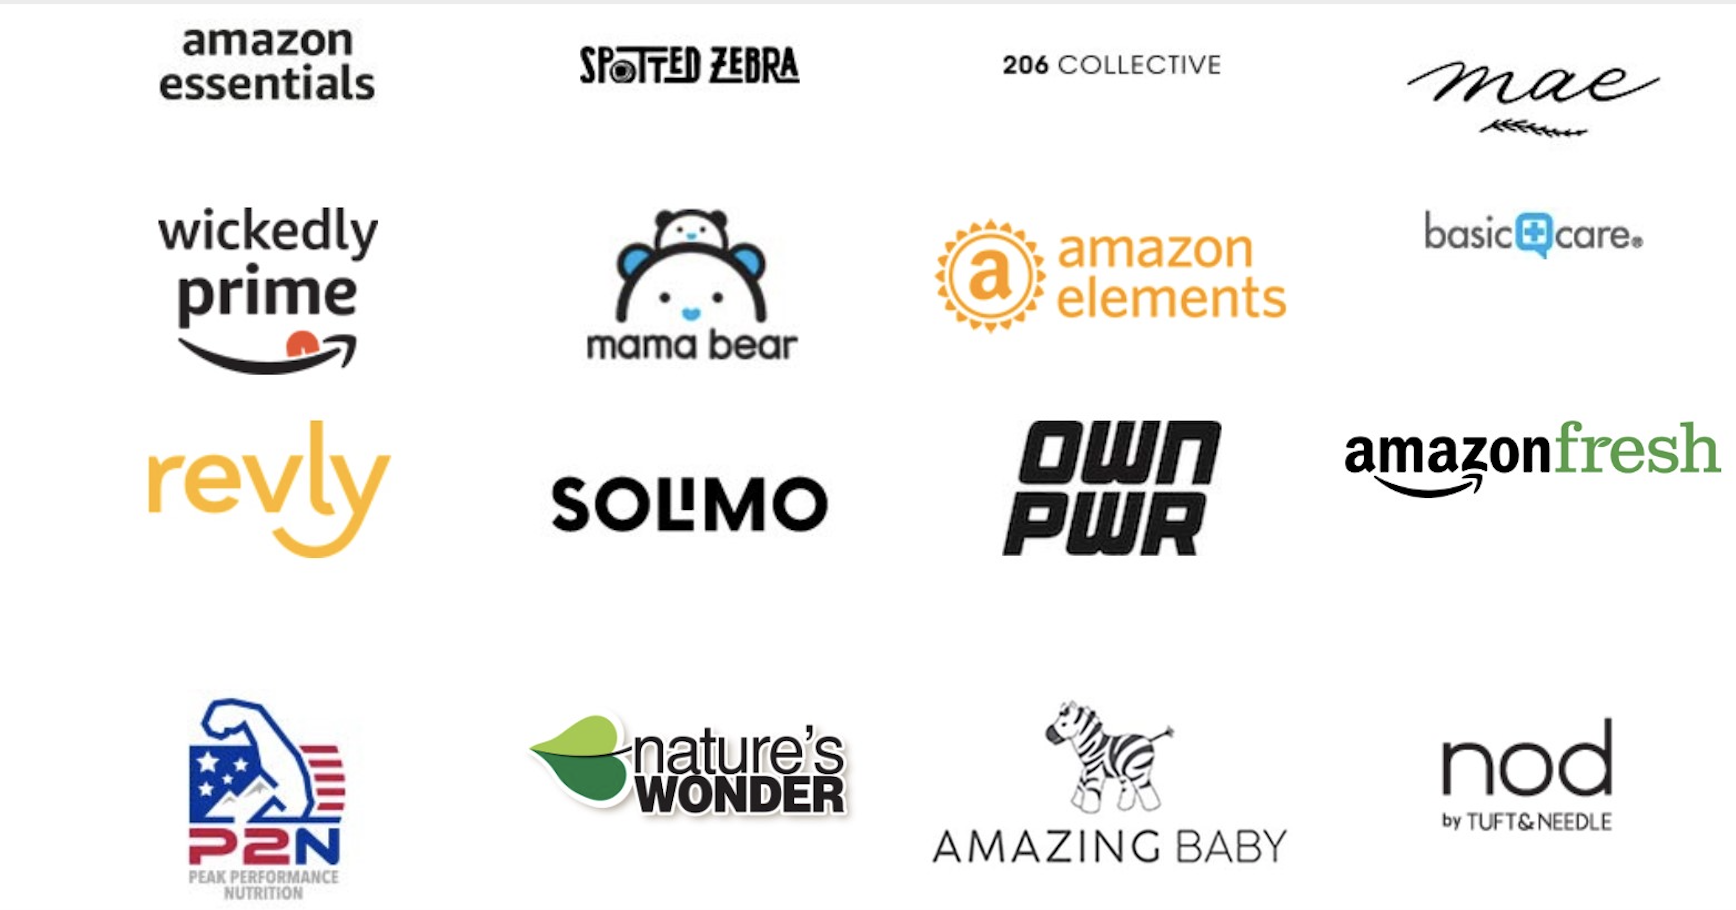 Amazon's private label brands